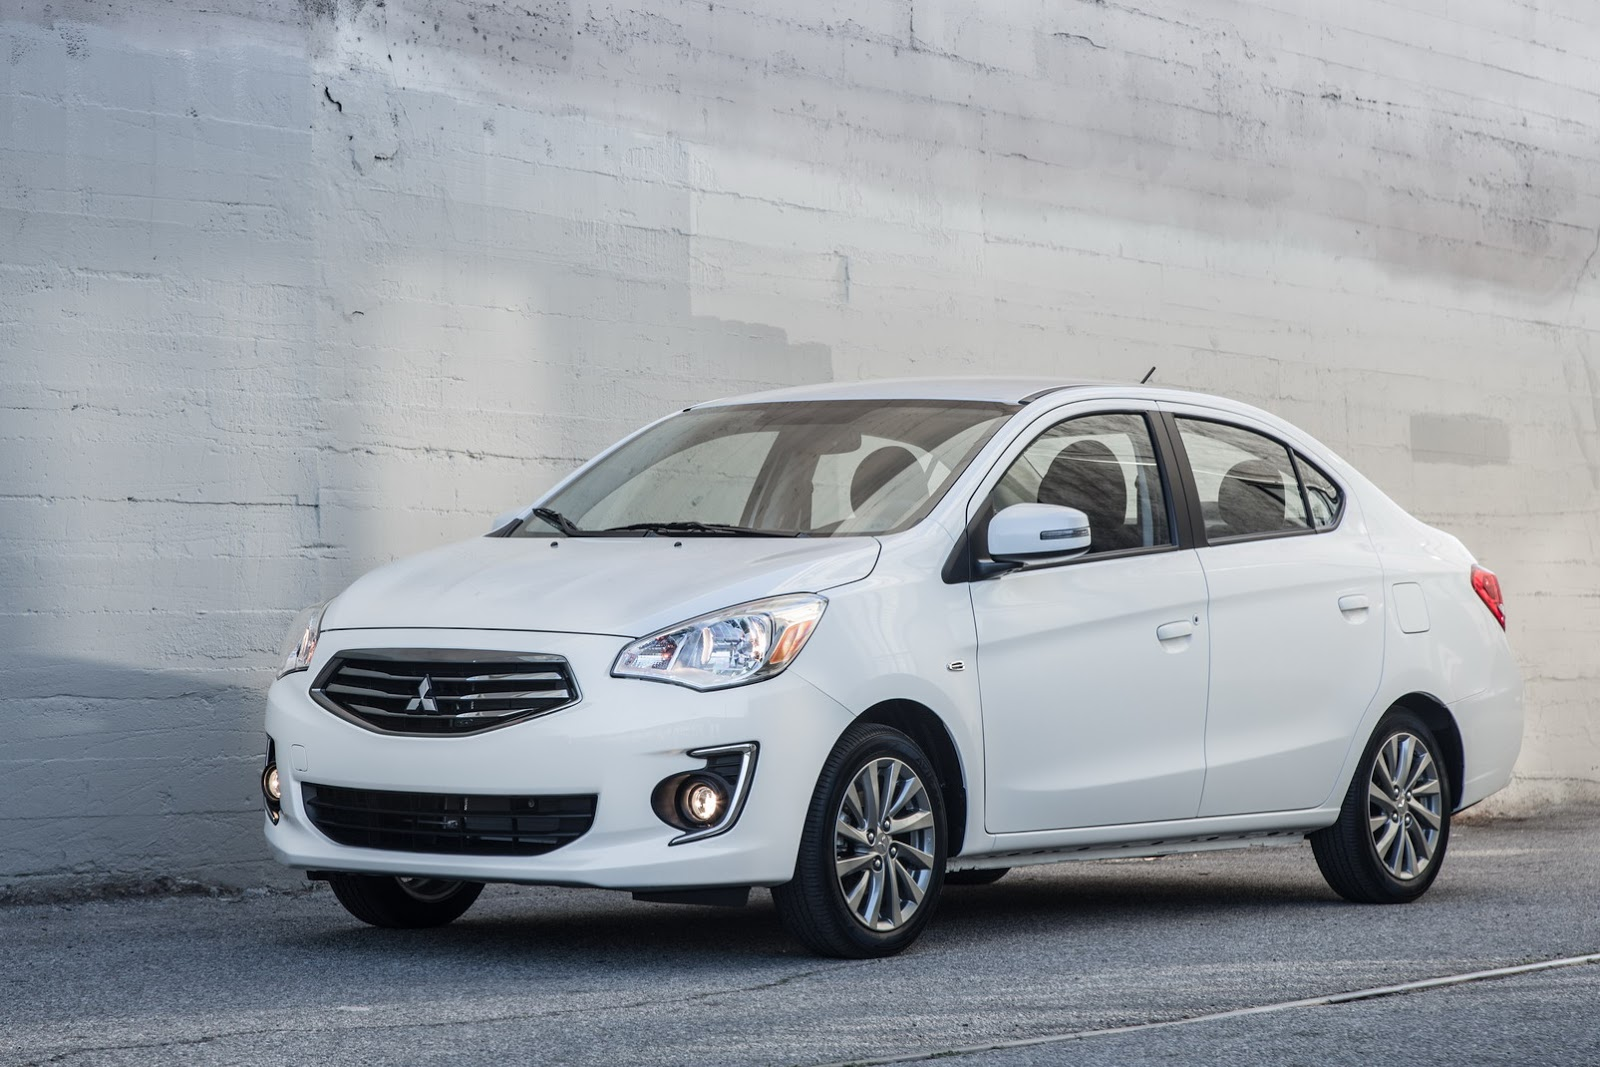 2017 mitsubishi mirage g4 subcompact sedan launched in new. Black Bedroom Furniture Sets. Home Design Ideas